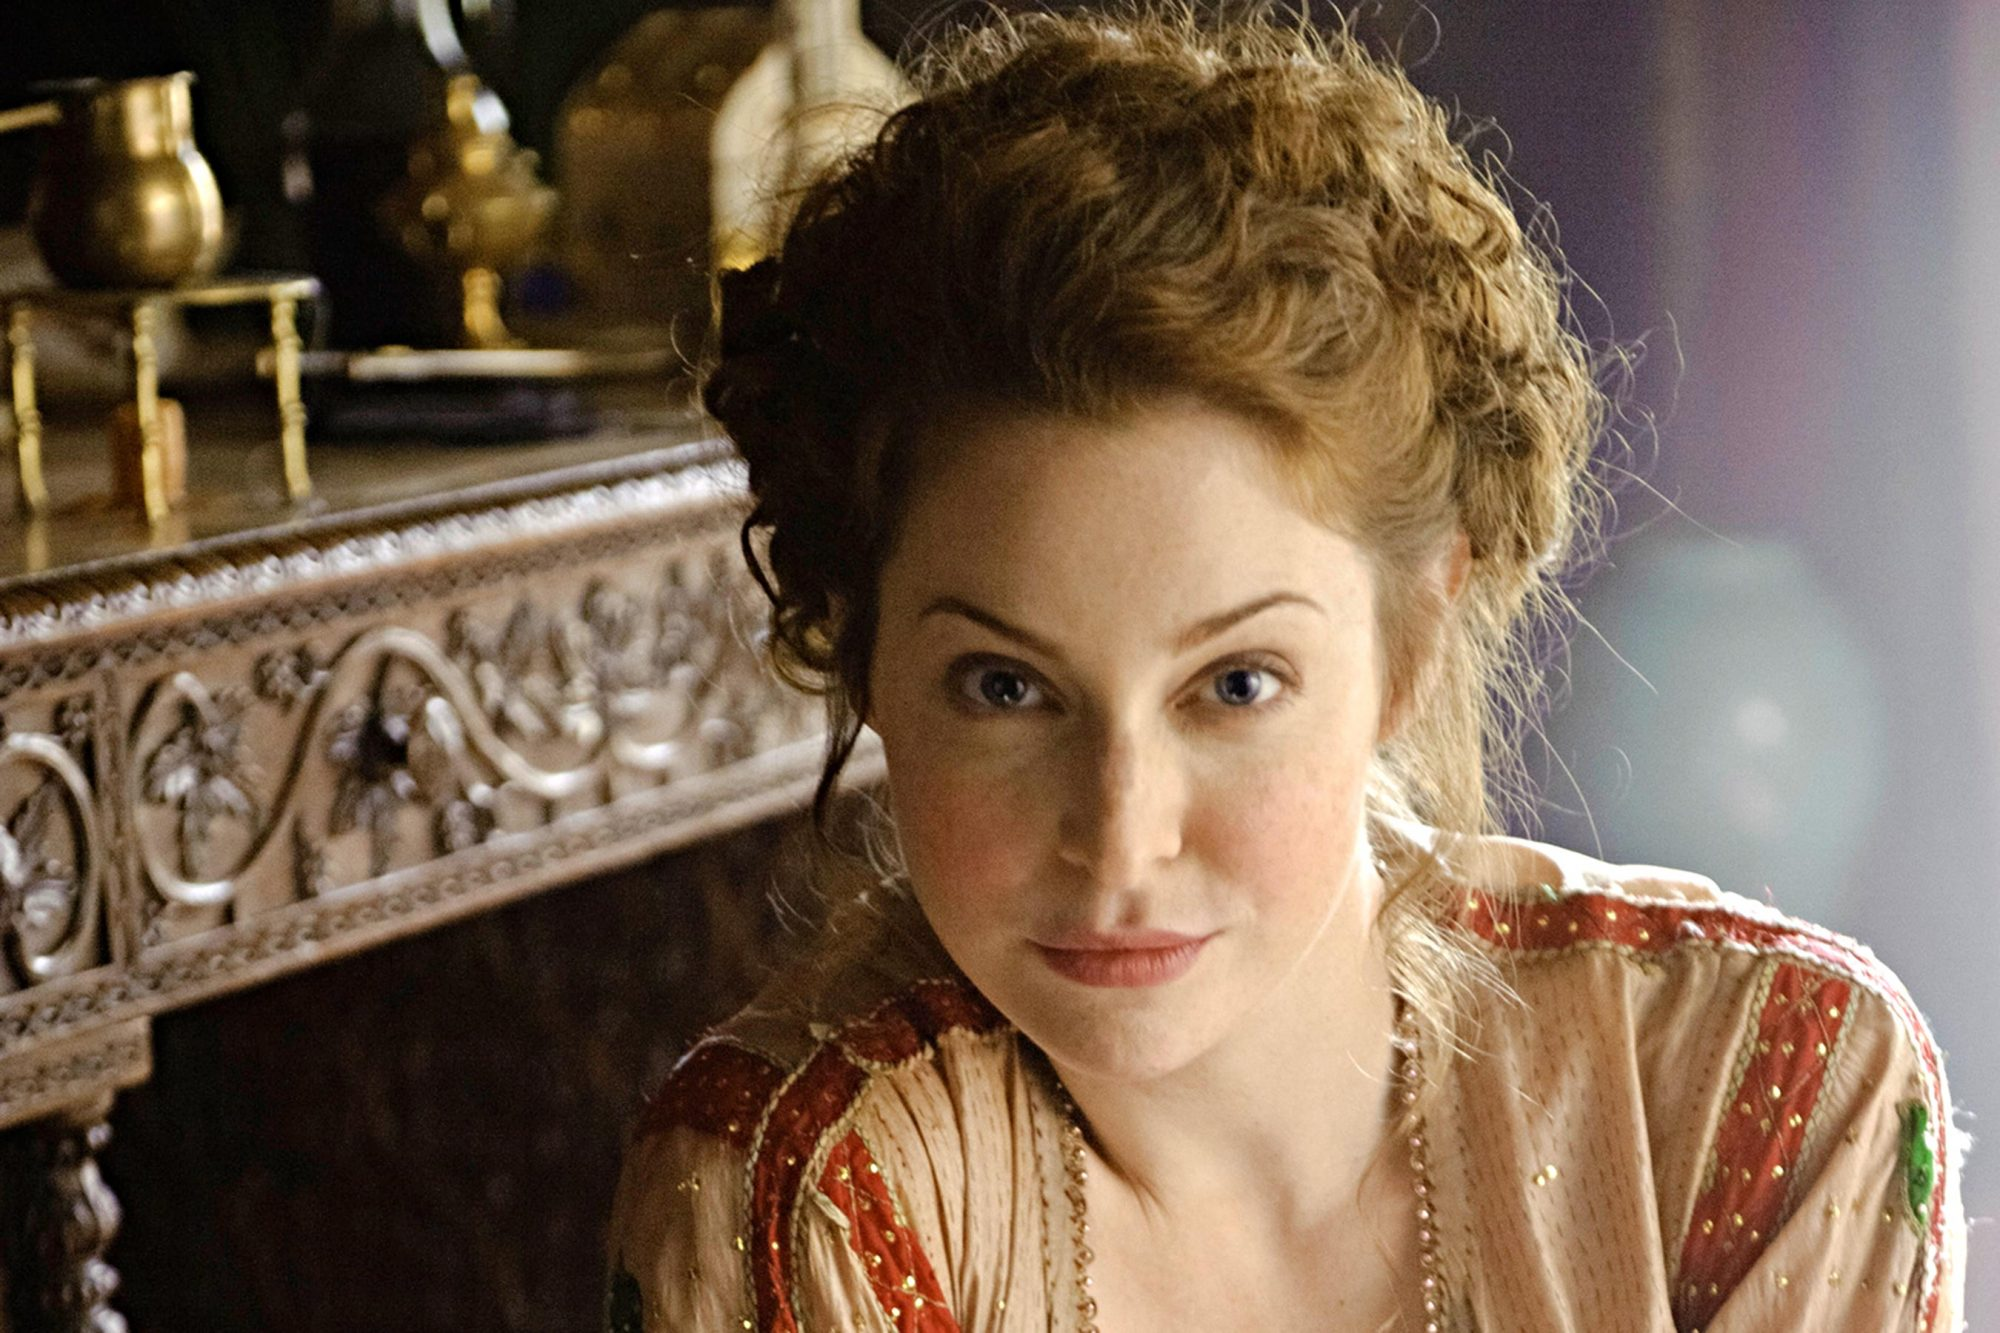 Actress Esme Bianco as the character Ros in Game of Thrones